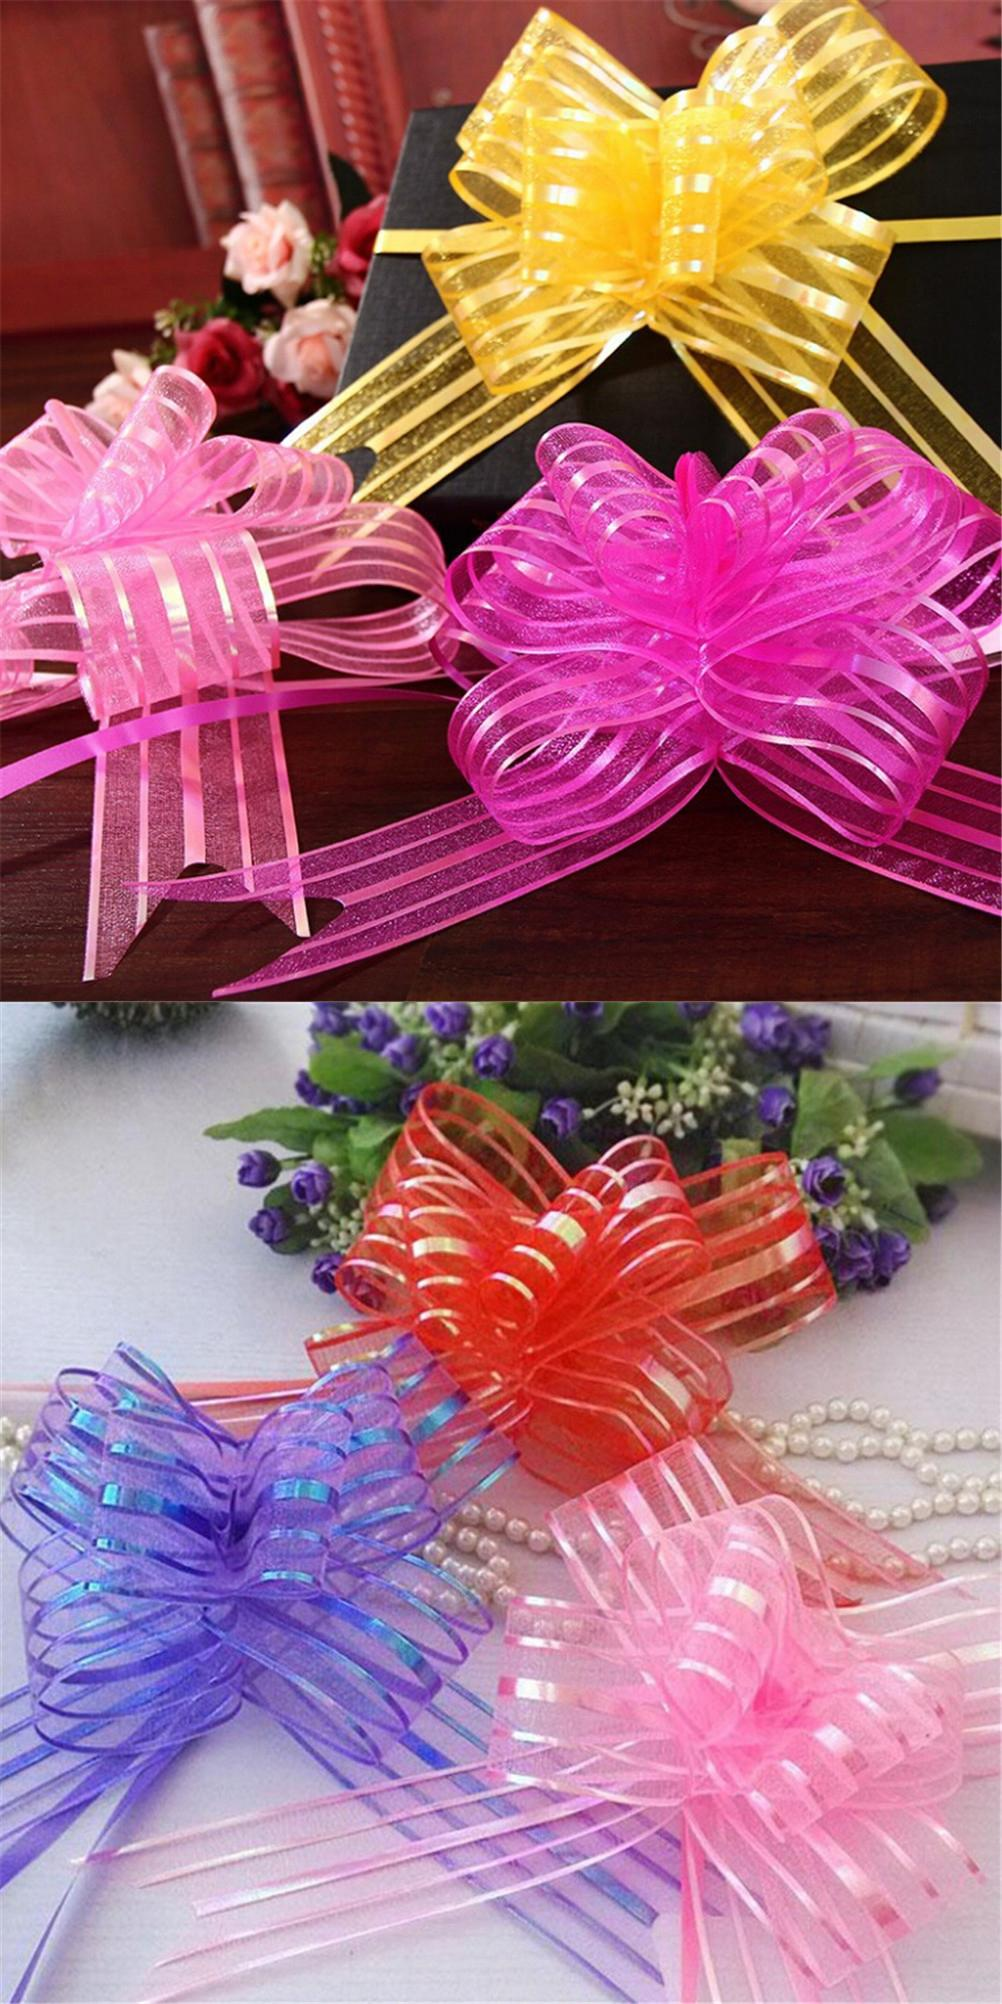 10pcs Yarn Pull Bows Ribbons Wedding Party Flower Decoration Organza Gift Wraps